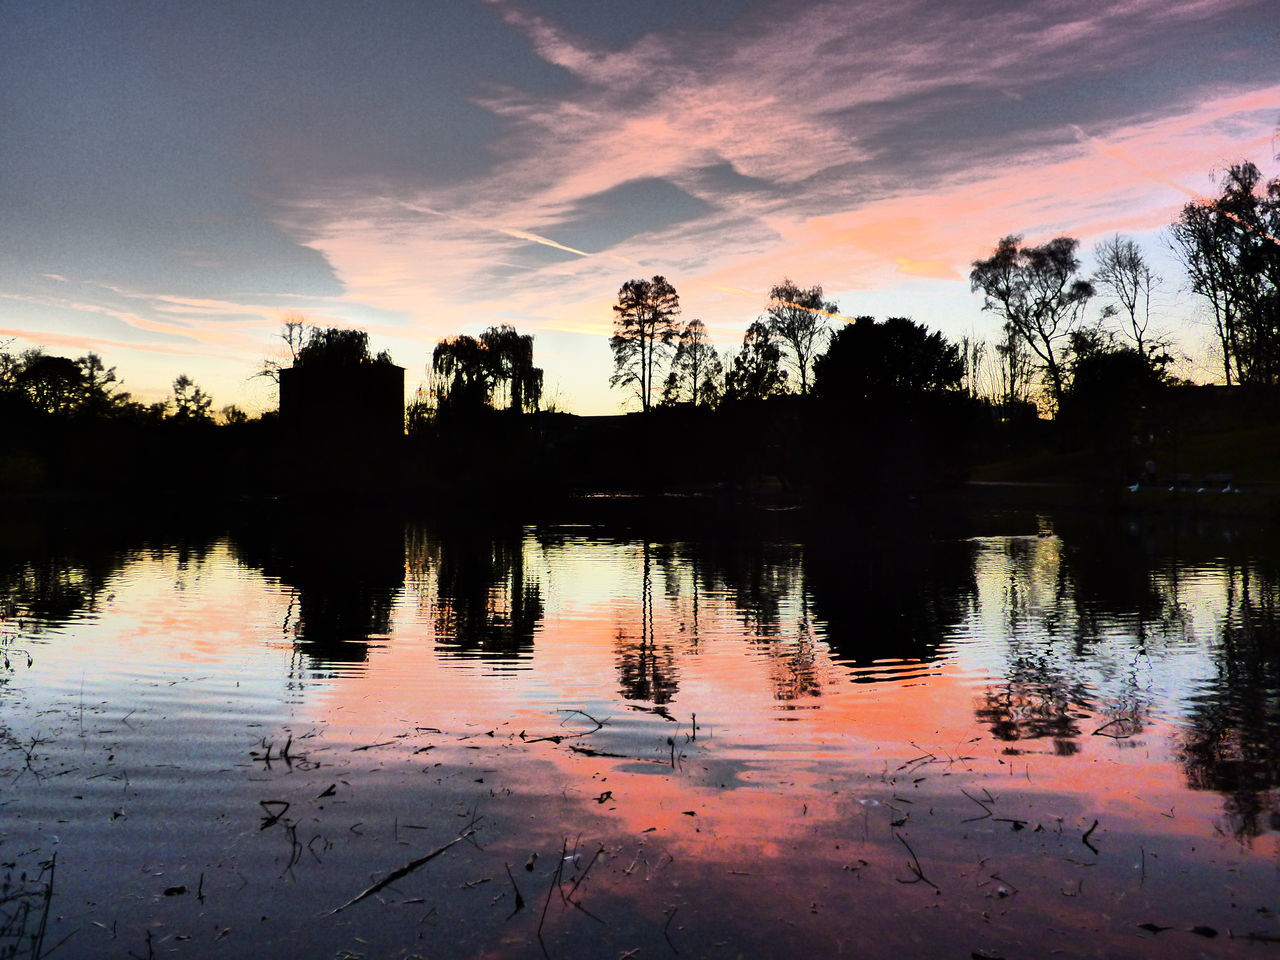 sunset, reflection, tree, sky, silhouette, water, nature, lake, cloud - sky, tranquility, beauty in nature, scenics, tranquil scene, outdoors, no people, growth, day